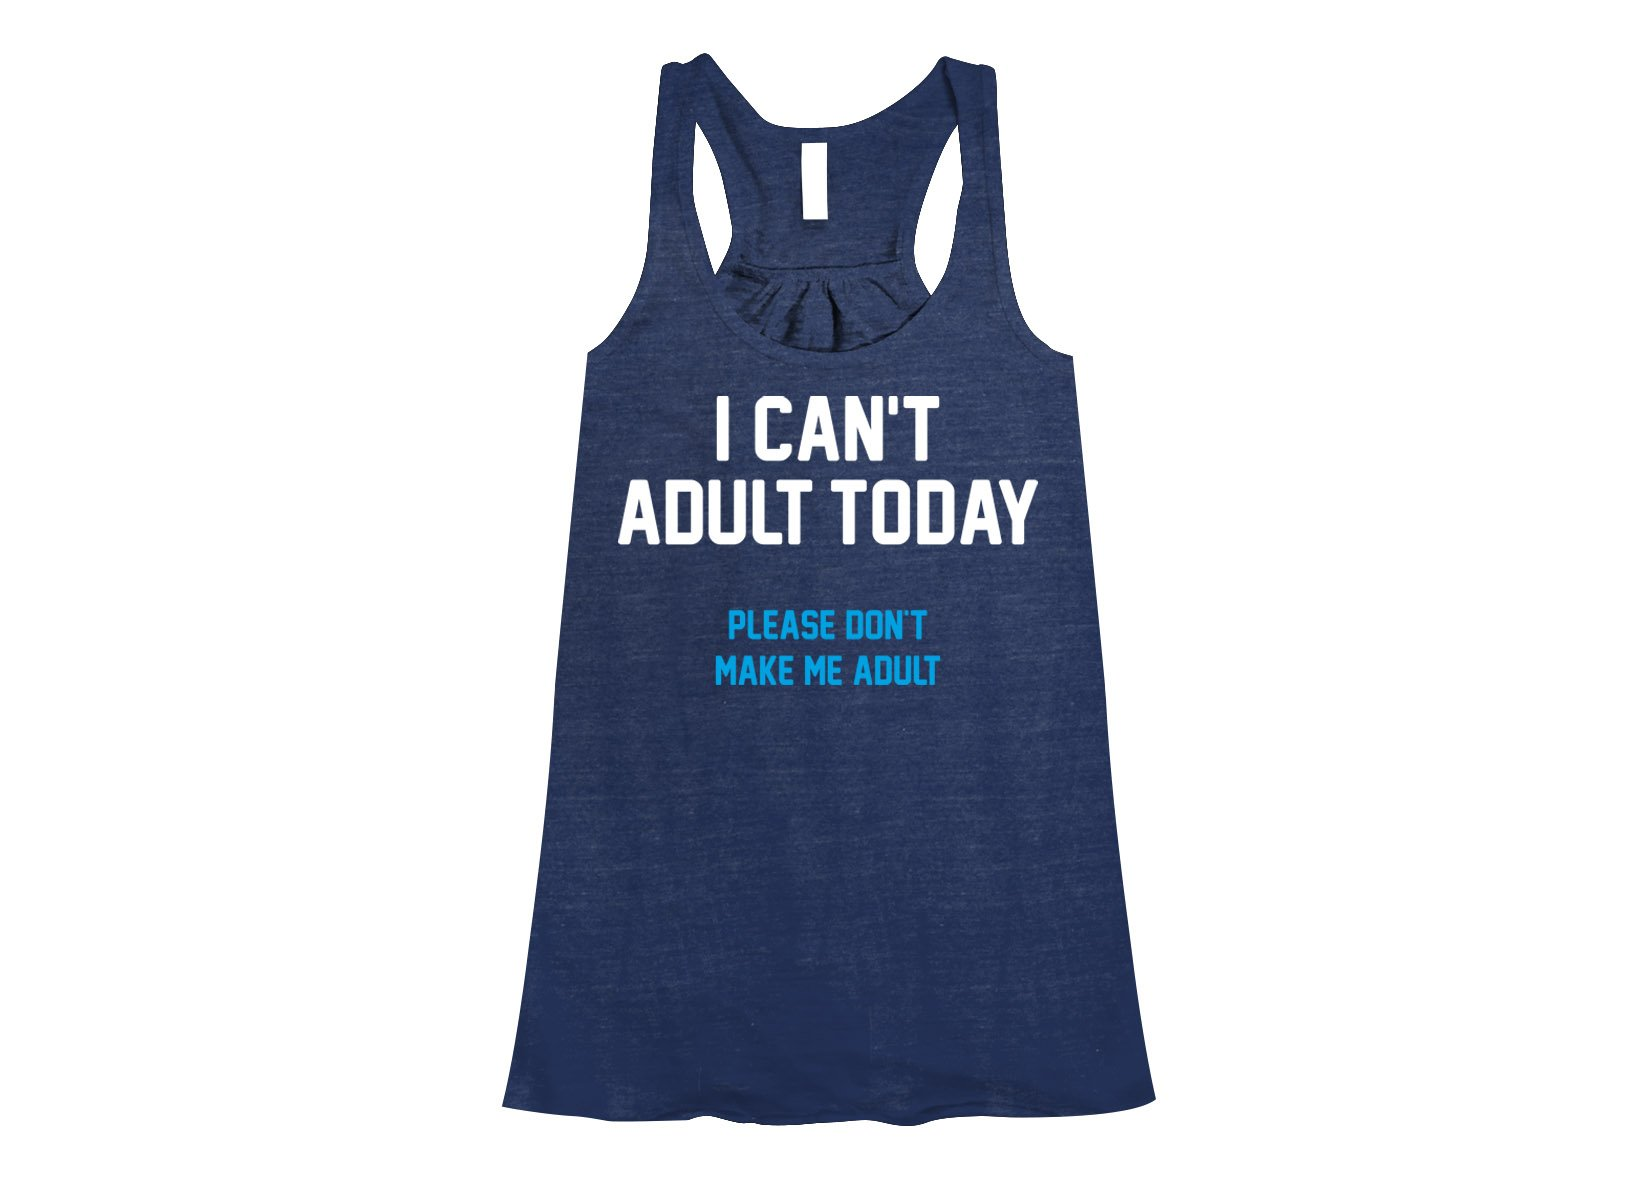 I Can't Adult Today on Womens Tanks T-Shirt